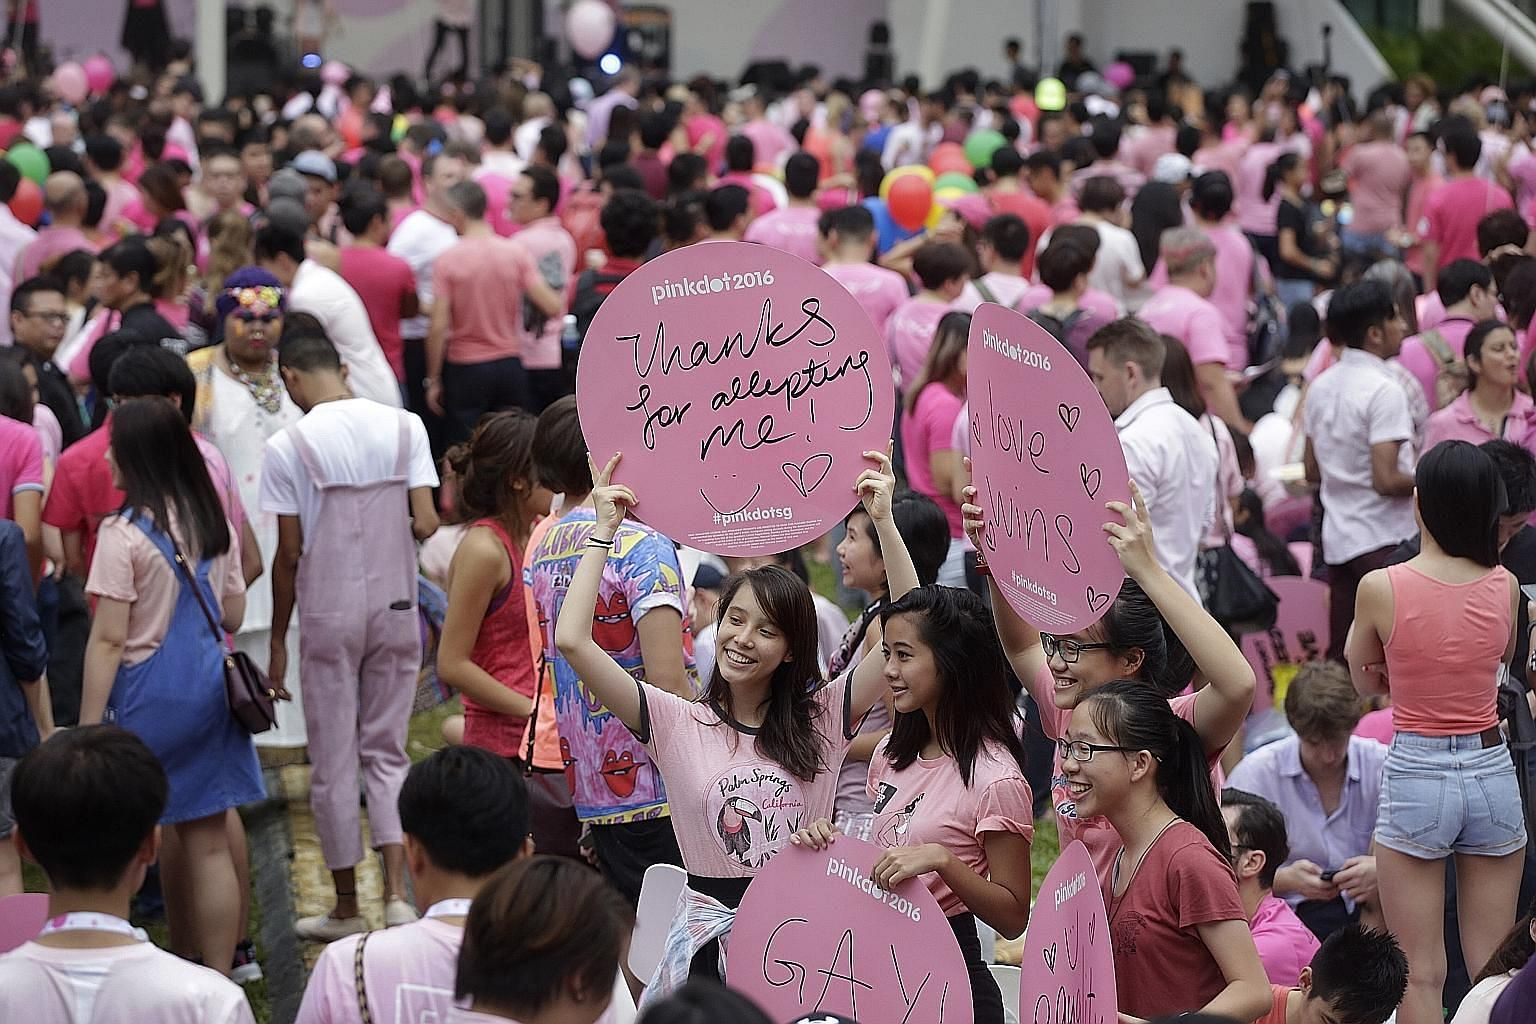 Participants at last year's Pink Dot event at the Speakers' Corner in Hong Lim Park. Foreign companies - the majority of Pink Dot's sponsors in the past - can no longer fund events at the Speakers' Corner unless they have a permit.